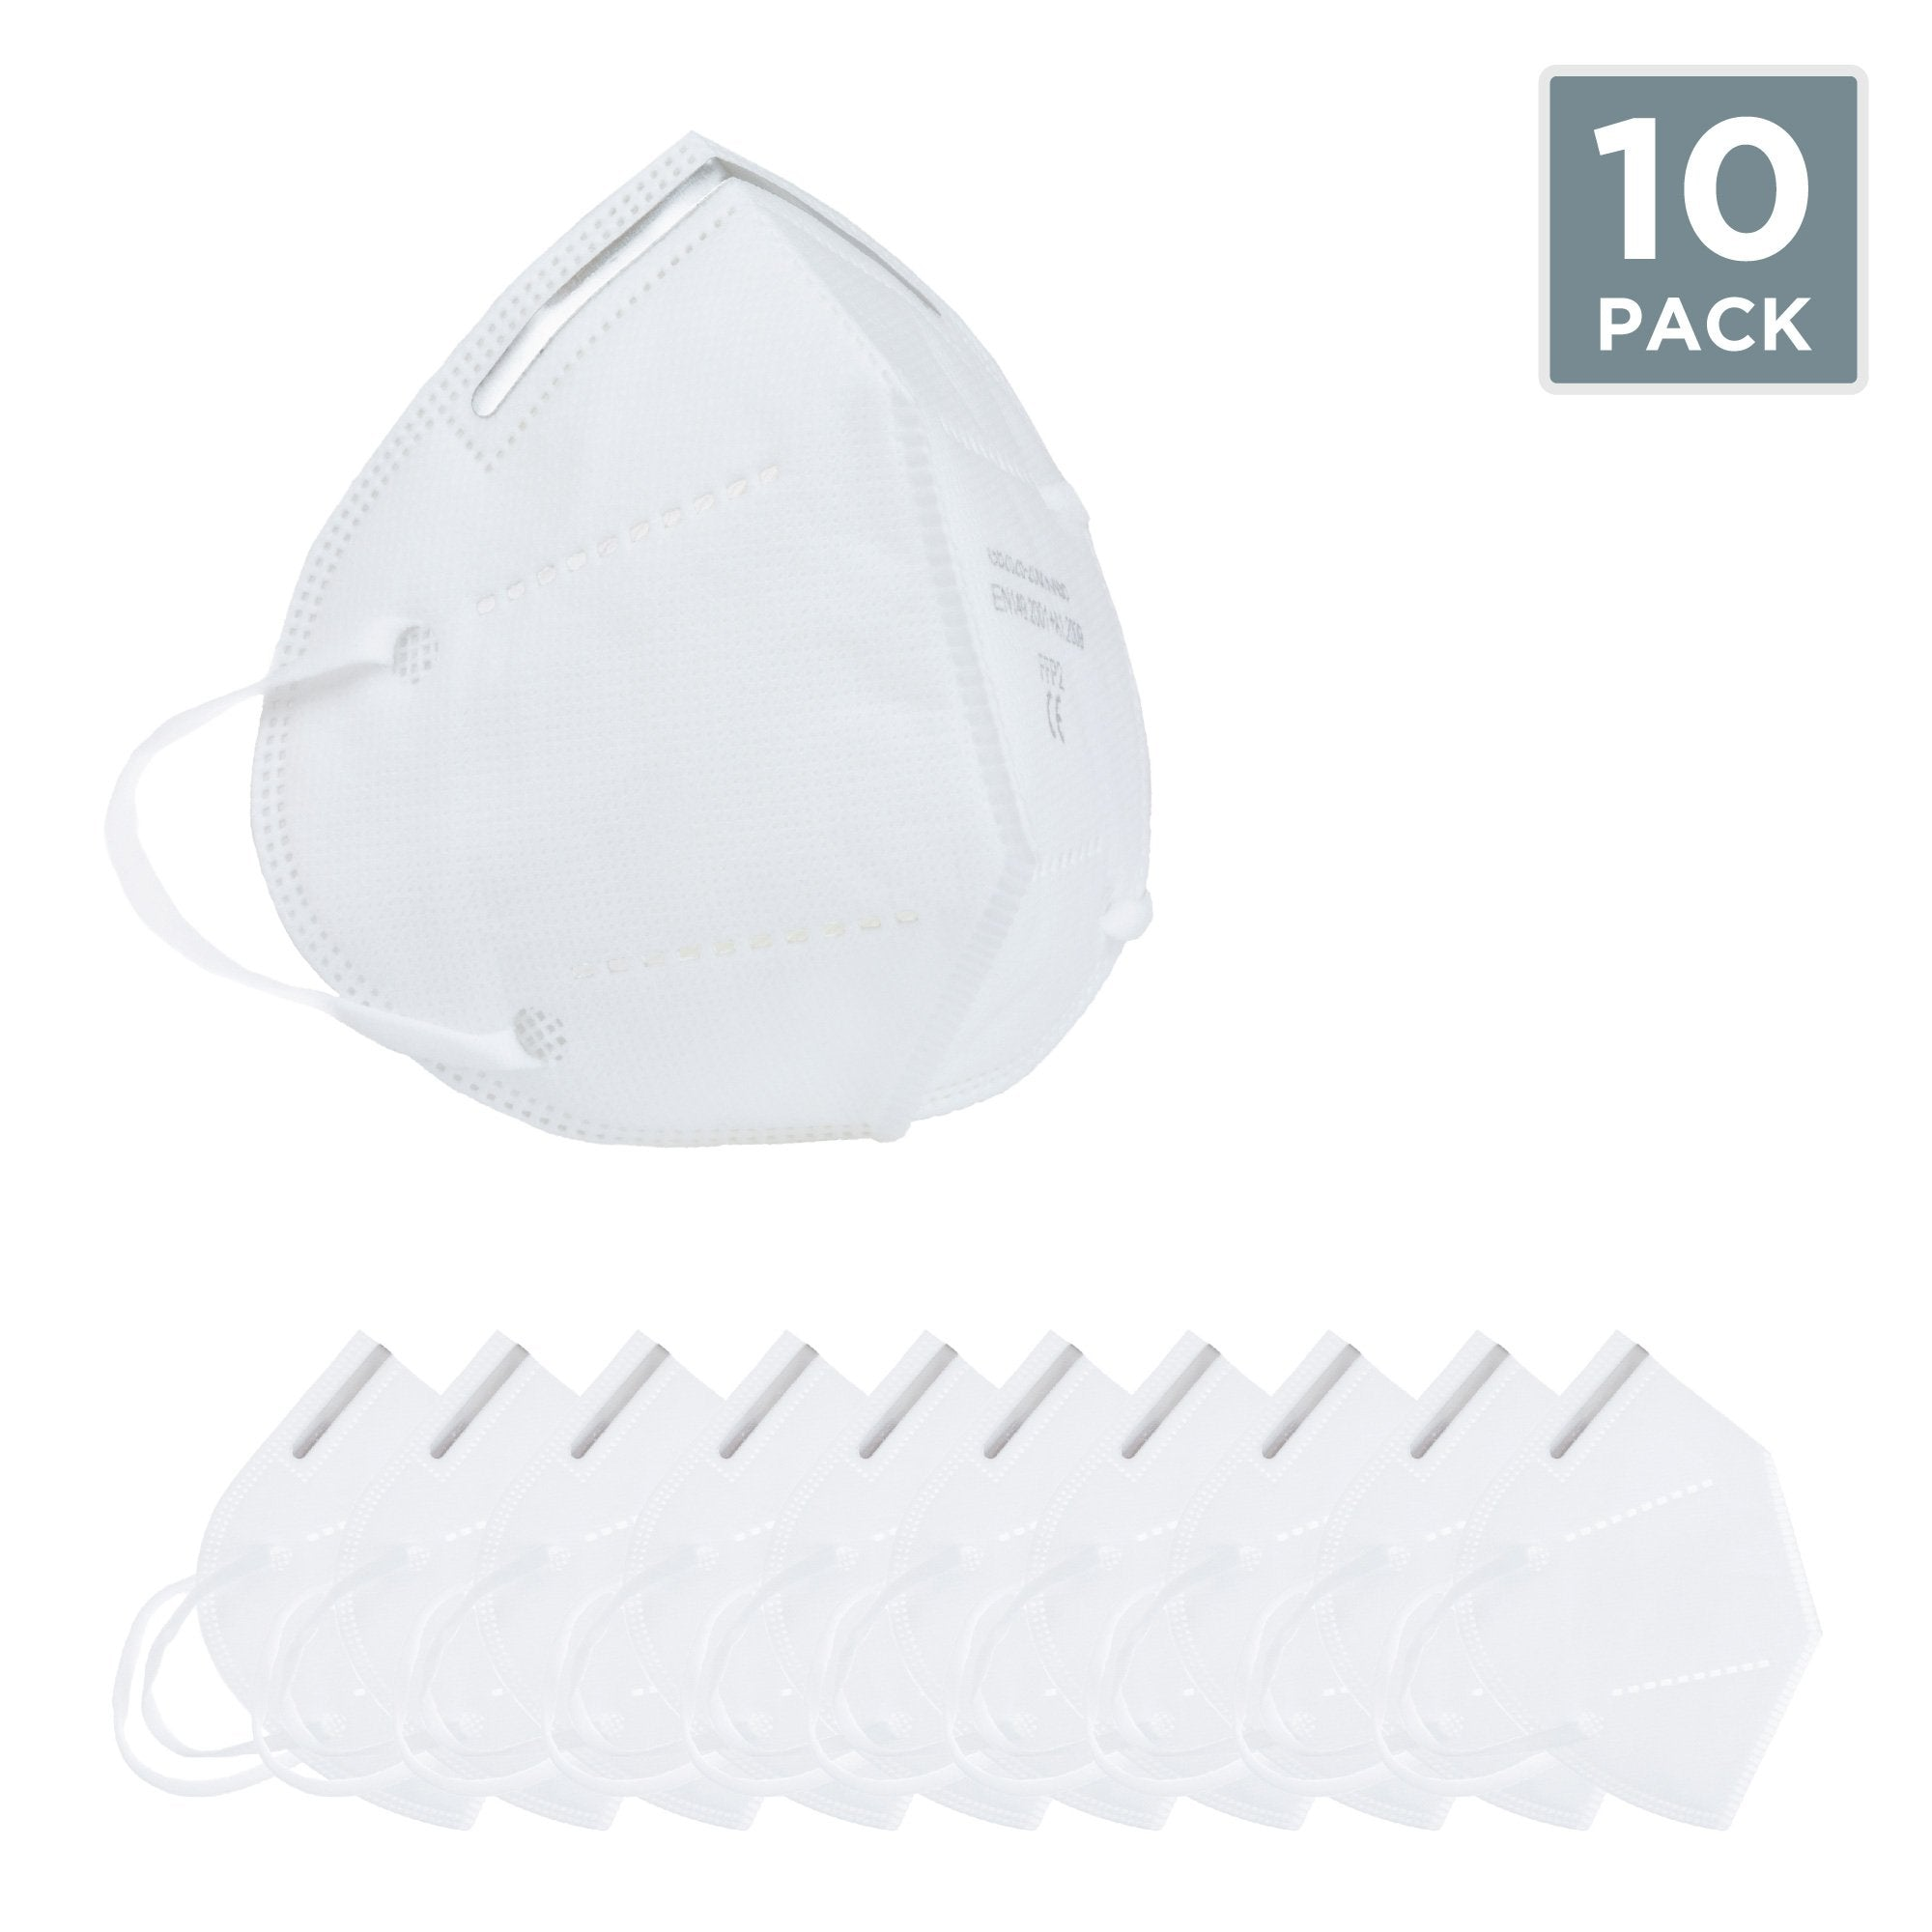 Health and Safety-Disposable KN95 Face Masks - Personal Use - Pack of 10 - Updated